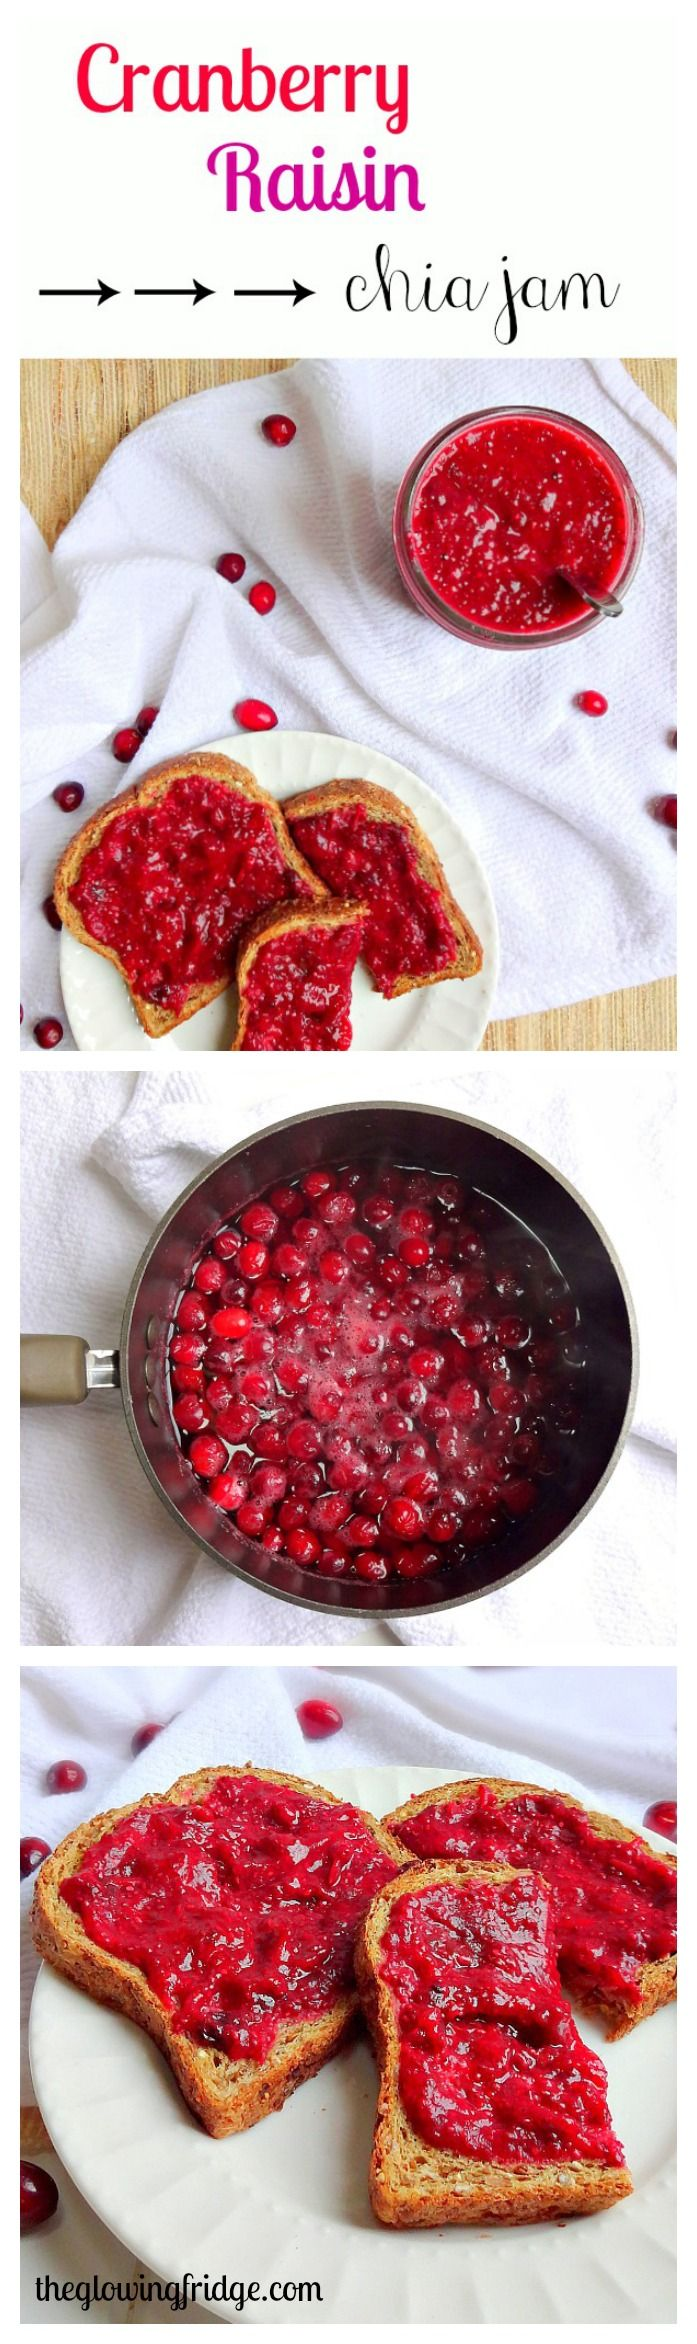 Cranberry Raisin Chia Seed Jam - Seasonal and Vegan Superfood Jam! Super easy to make and tastes amazing on toast, in oatmeal, on crackers or on it's own with a spoon! From The Glowing Fridge